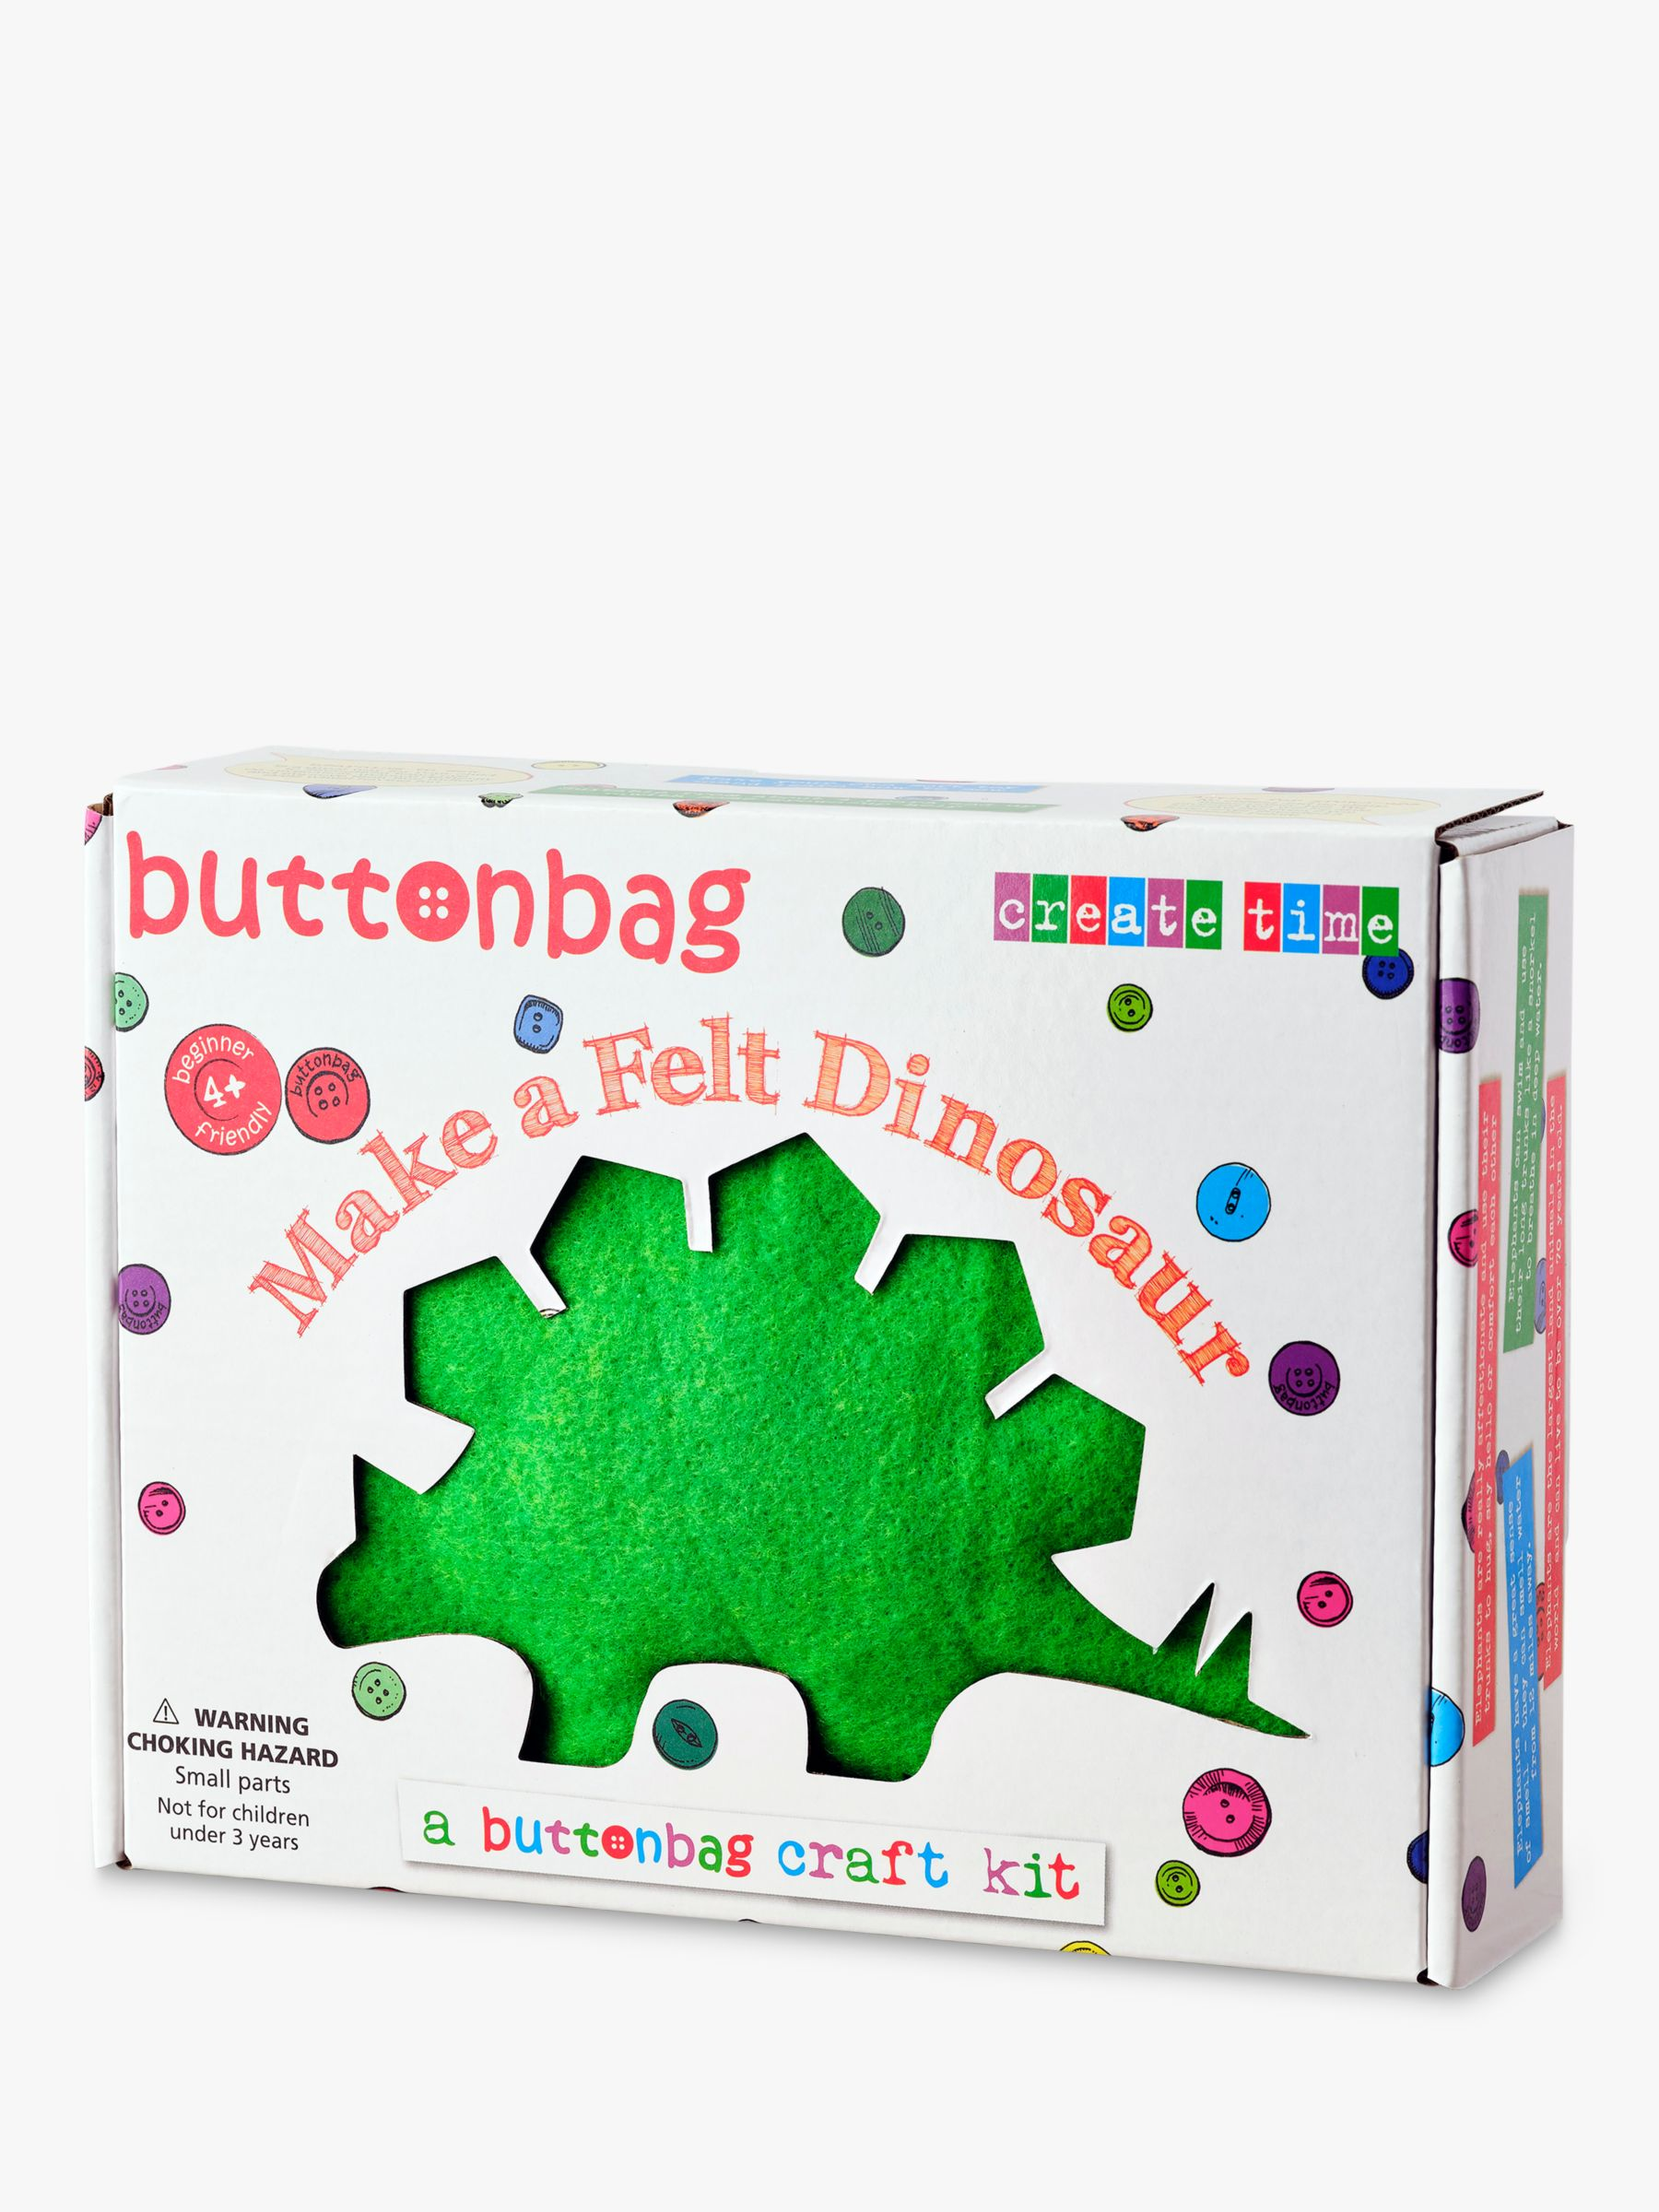 Buttonbag Buttonbag Starter Sewing Kit, Dinosaur